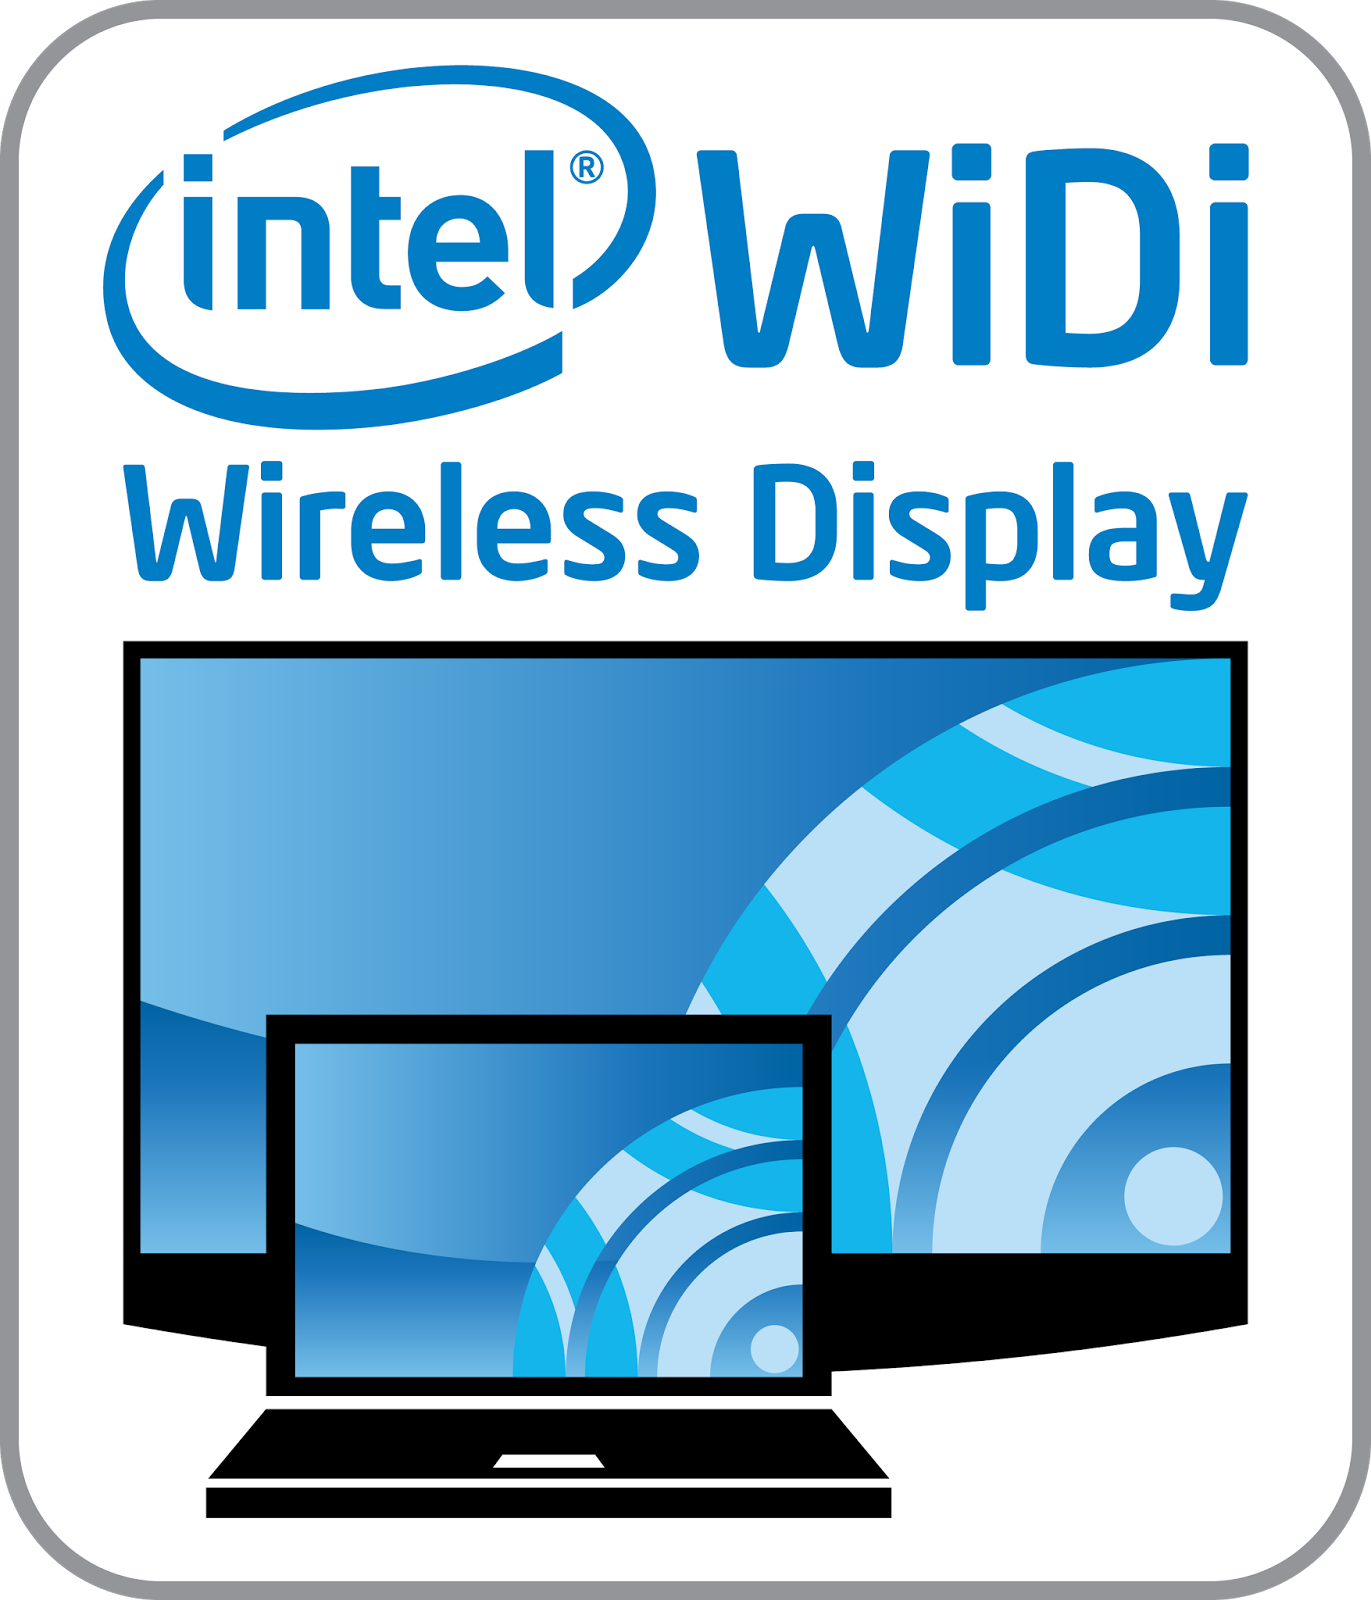 Intel WiDi Download, Intel WiDi Download